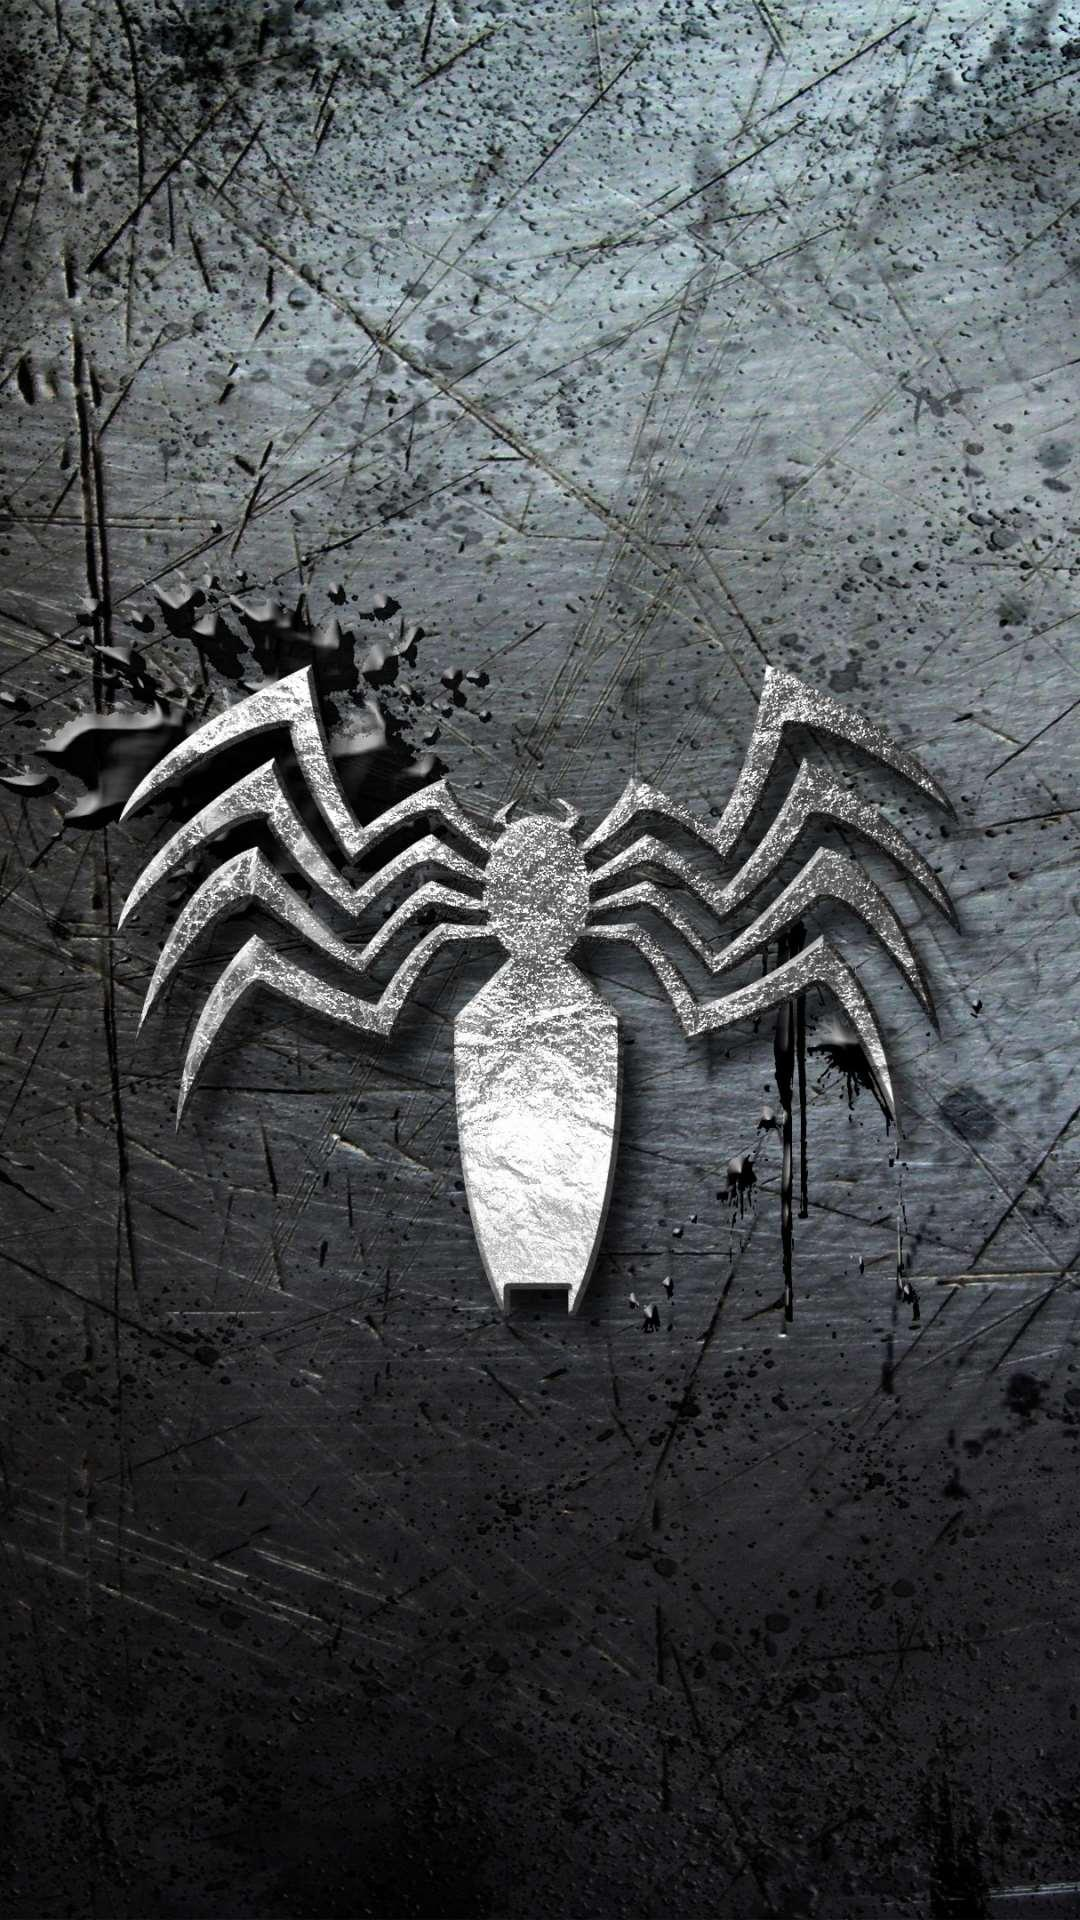 Venom Wallpapers HD 4K for Android - APK Download